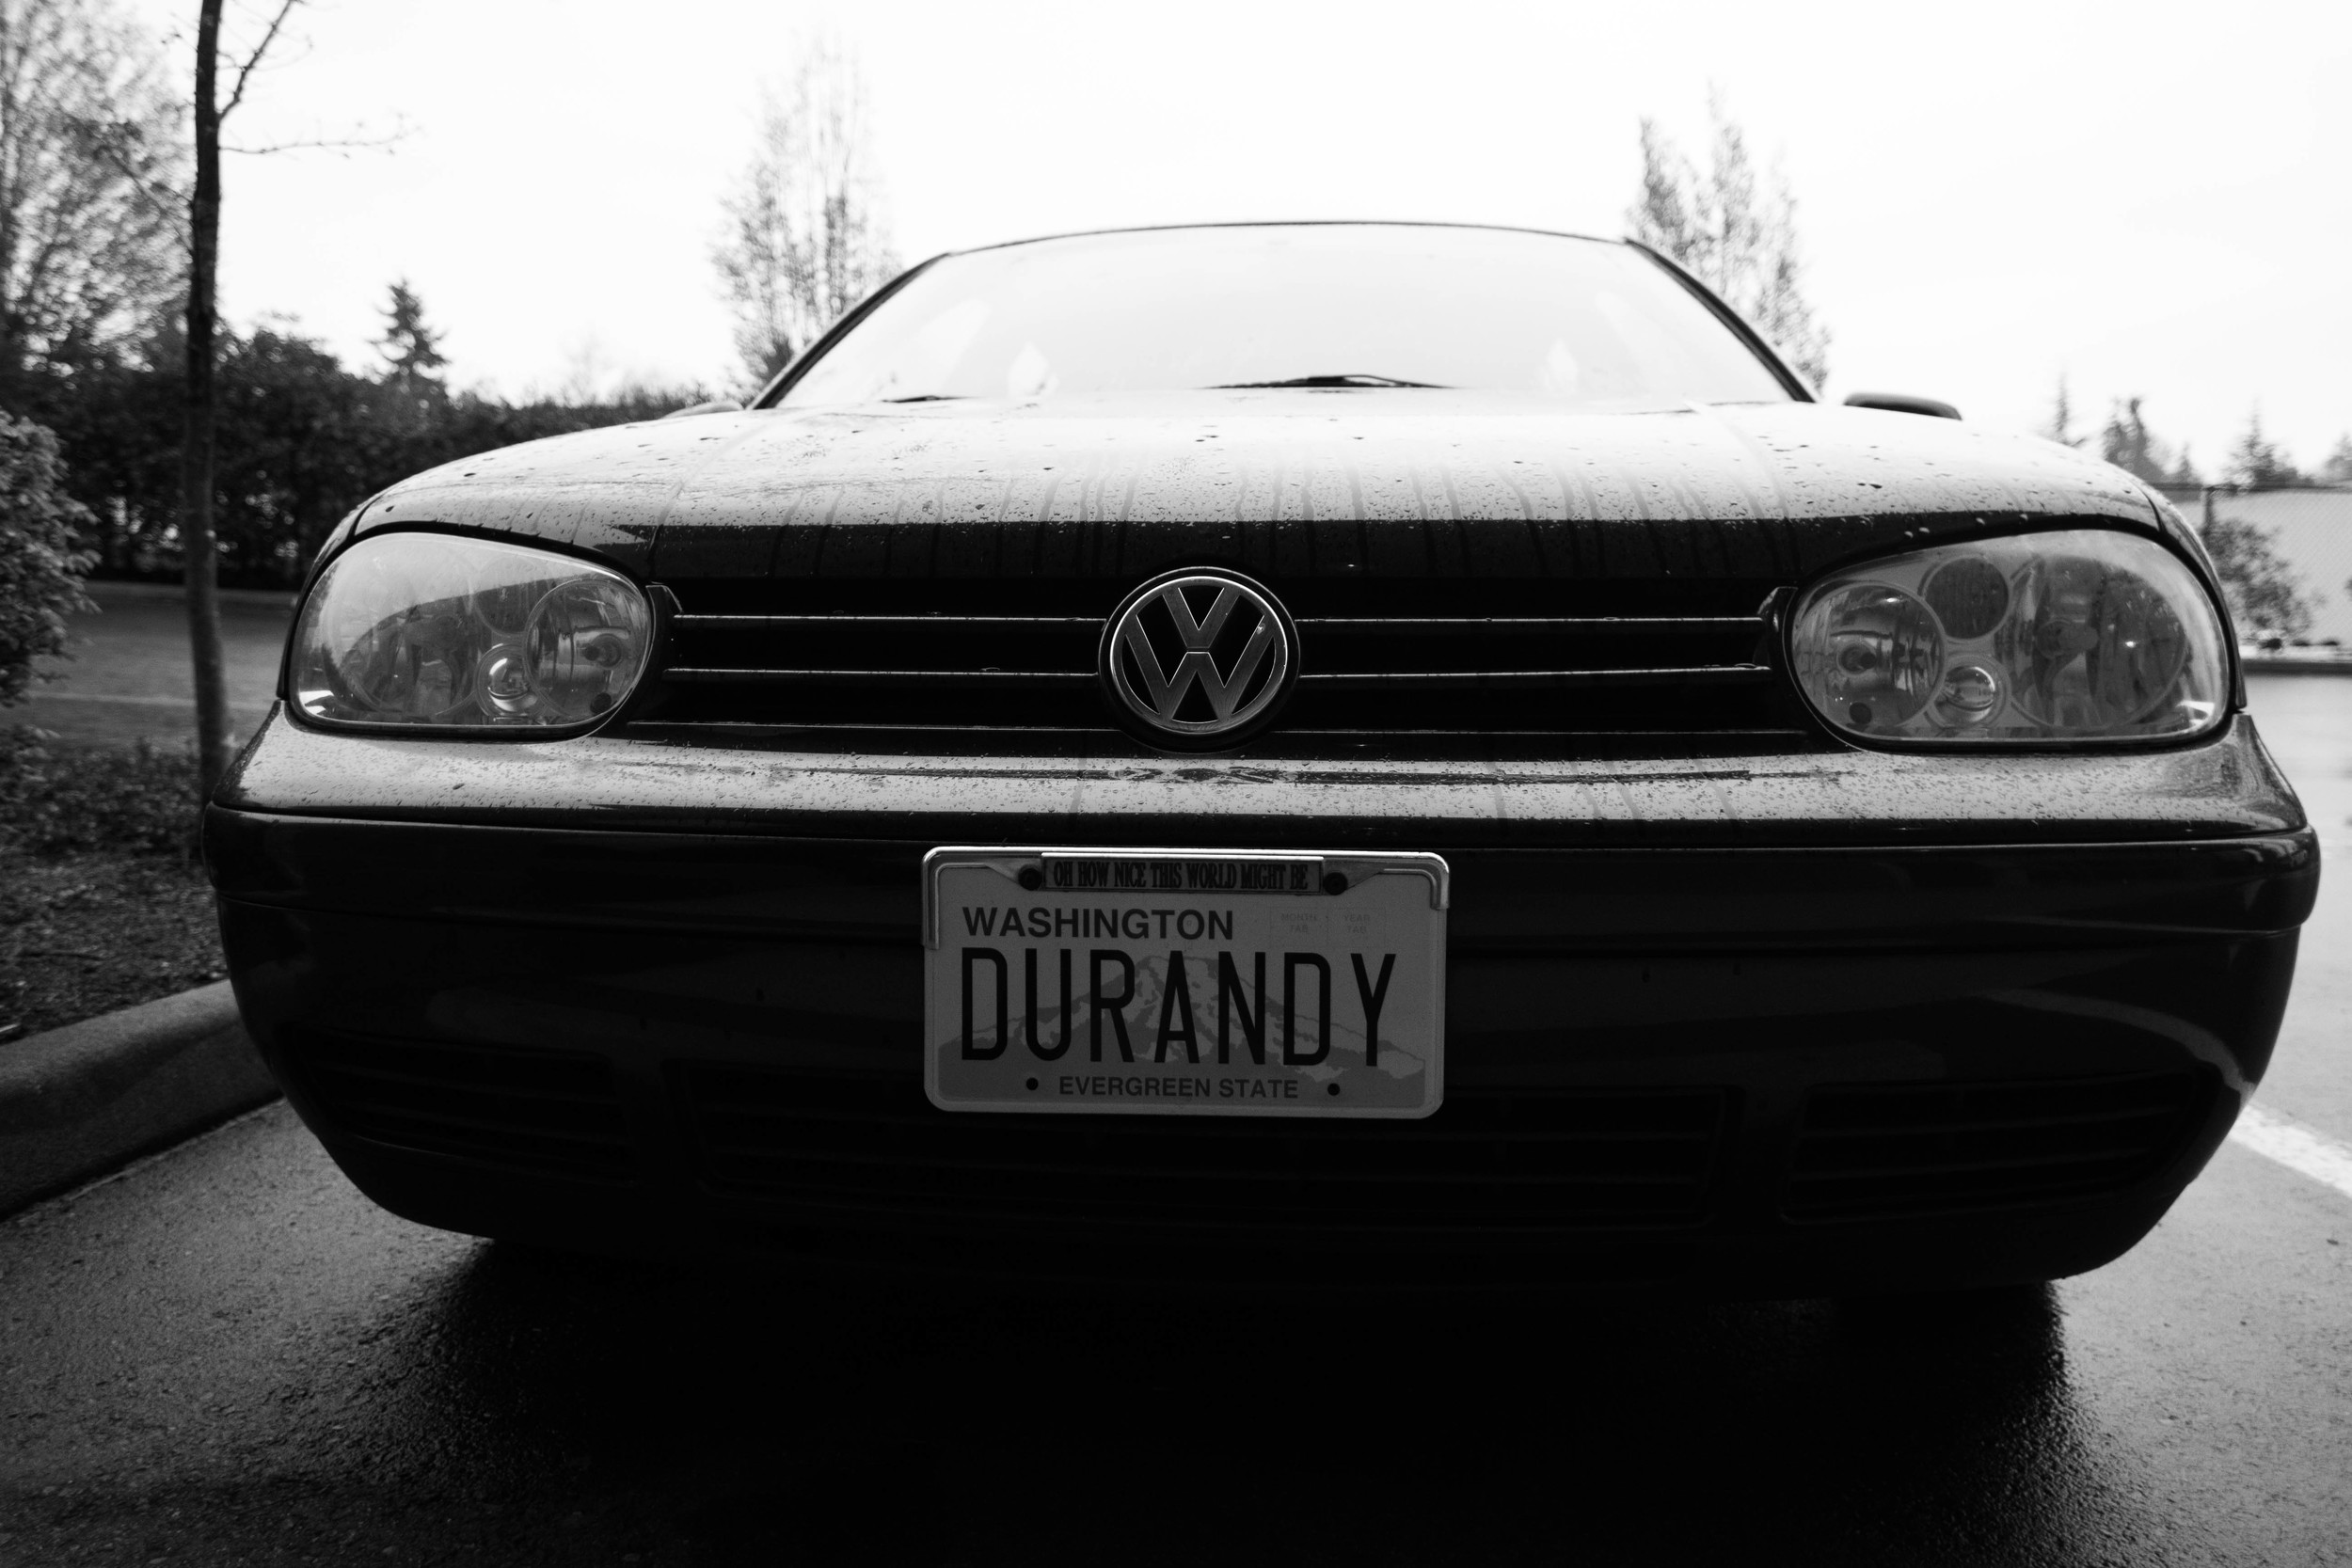 """Andrew """"Durandy"""" Golub's personalized license plate. Golub, 42, has become a well-known archivist of Duran Duran memorabilia. He houses his in a storage unit in Bellevue, Wash."""